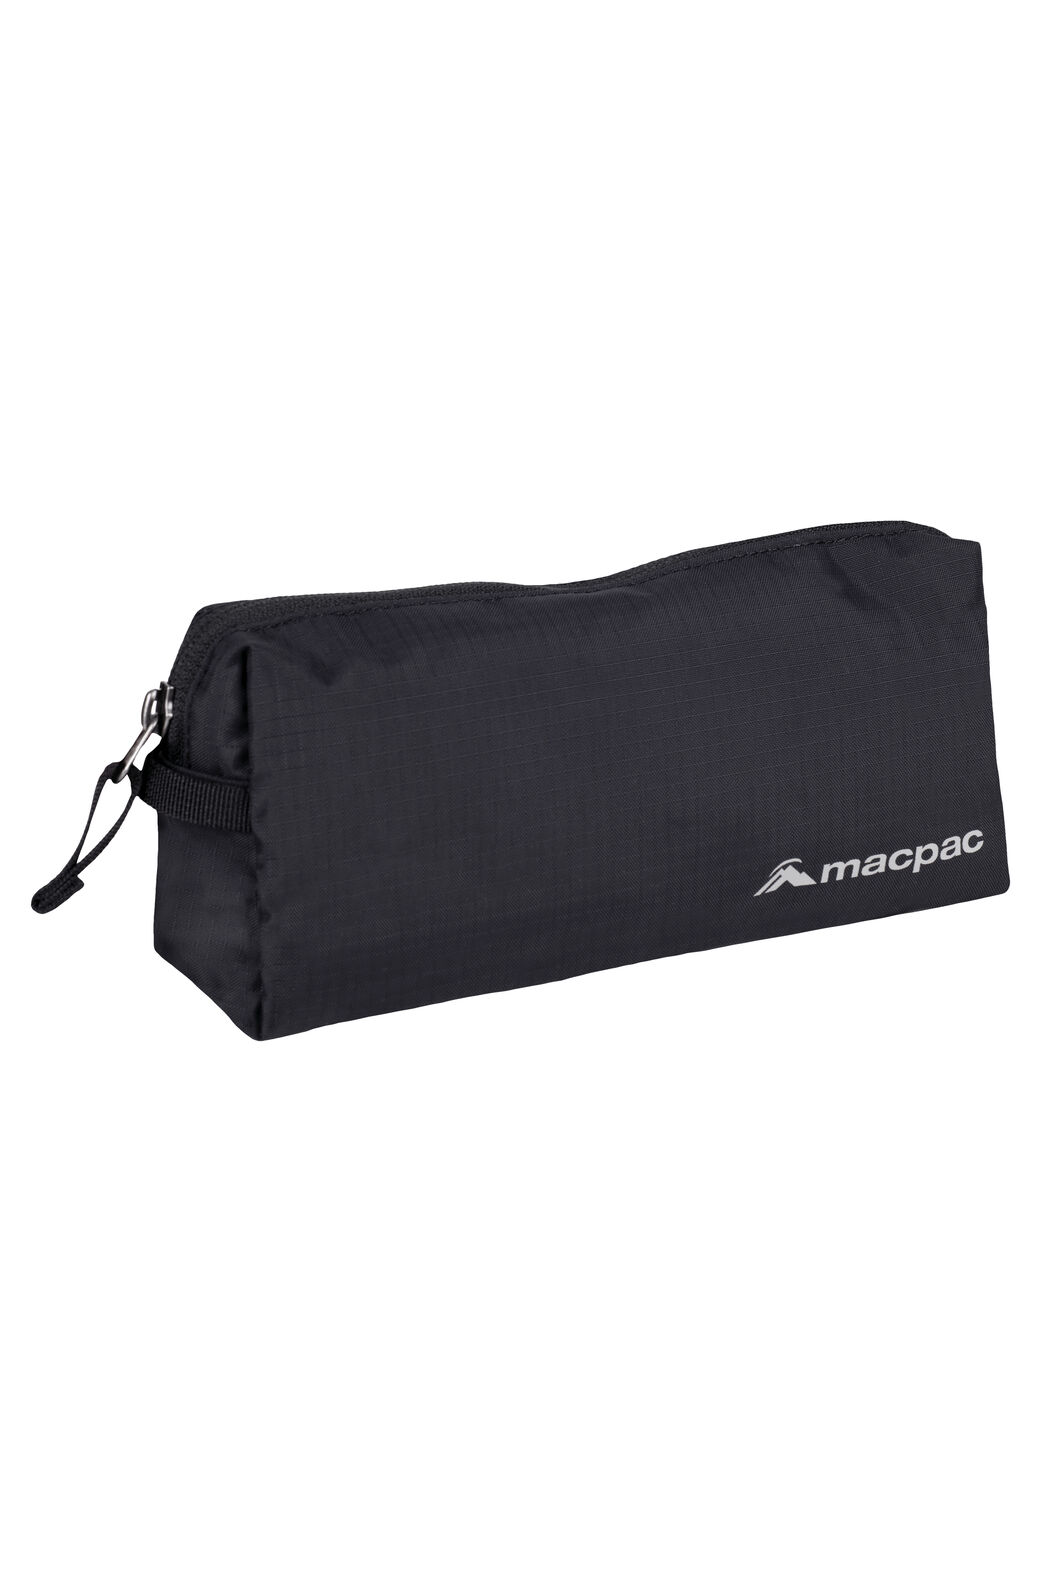 Macpac Carry-On Wash Bag, Black, hi-res